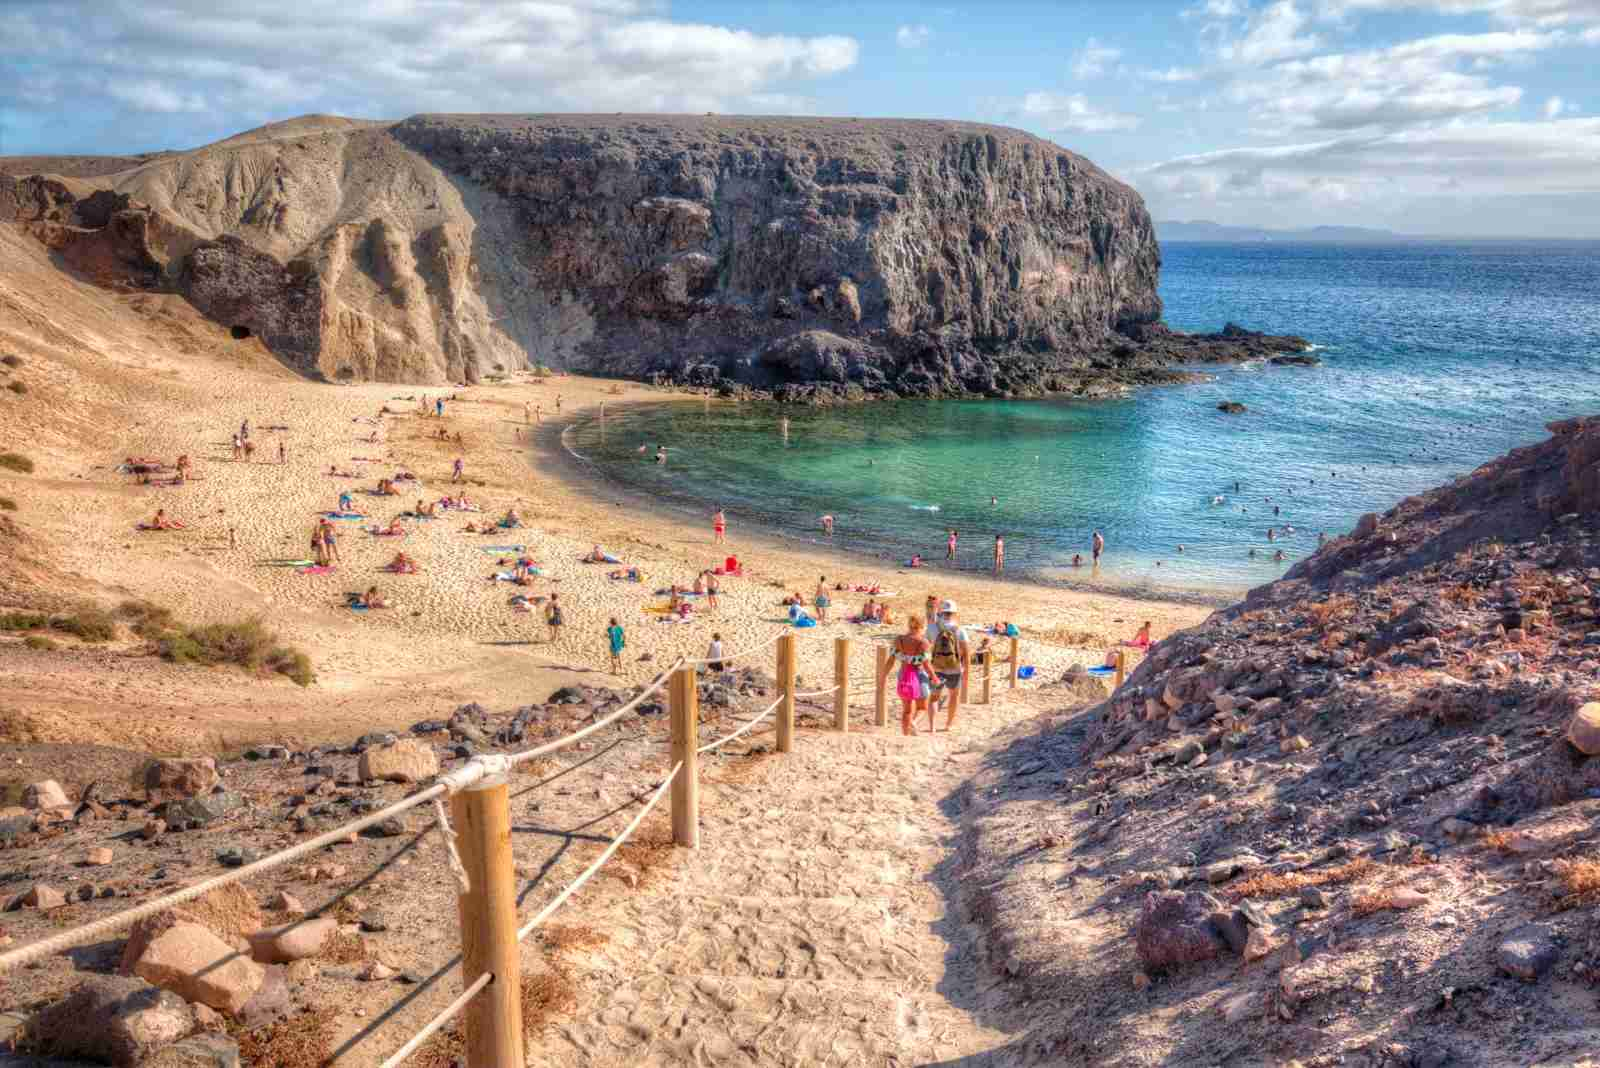 Playa Papagayo, Canary Islands. (Photo by Zu Sanchez Photography / Getty Images)